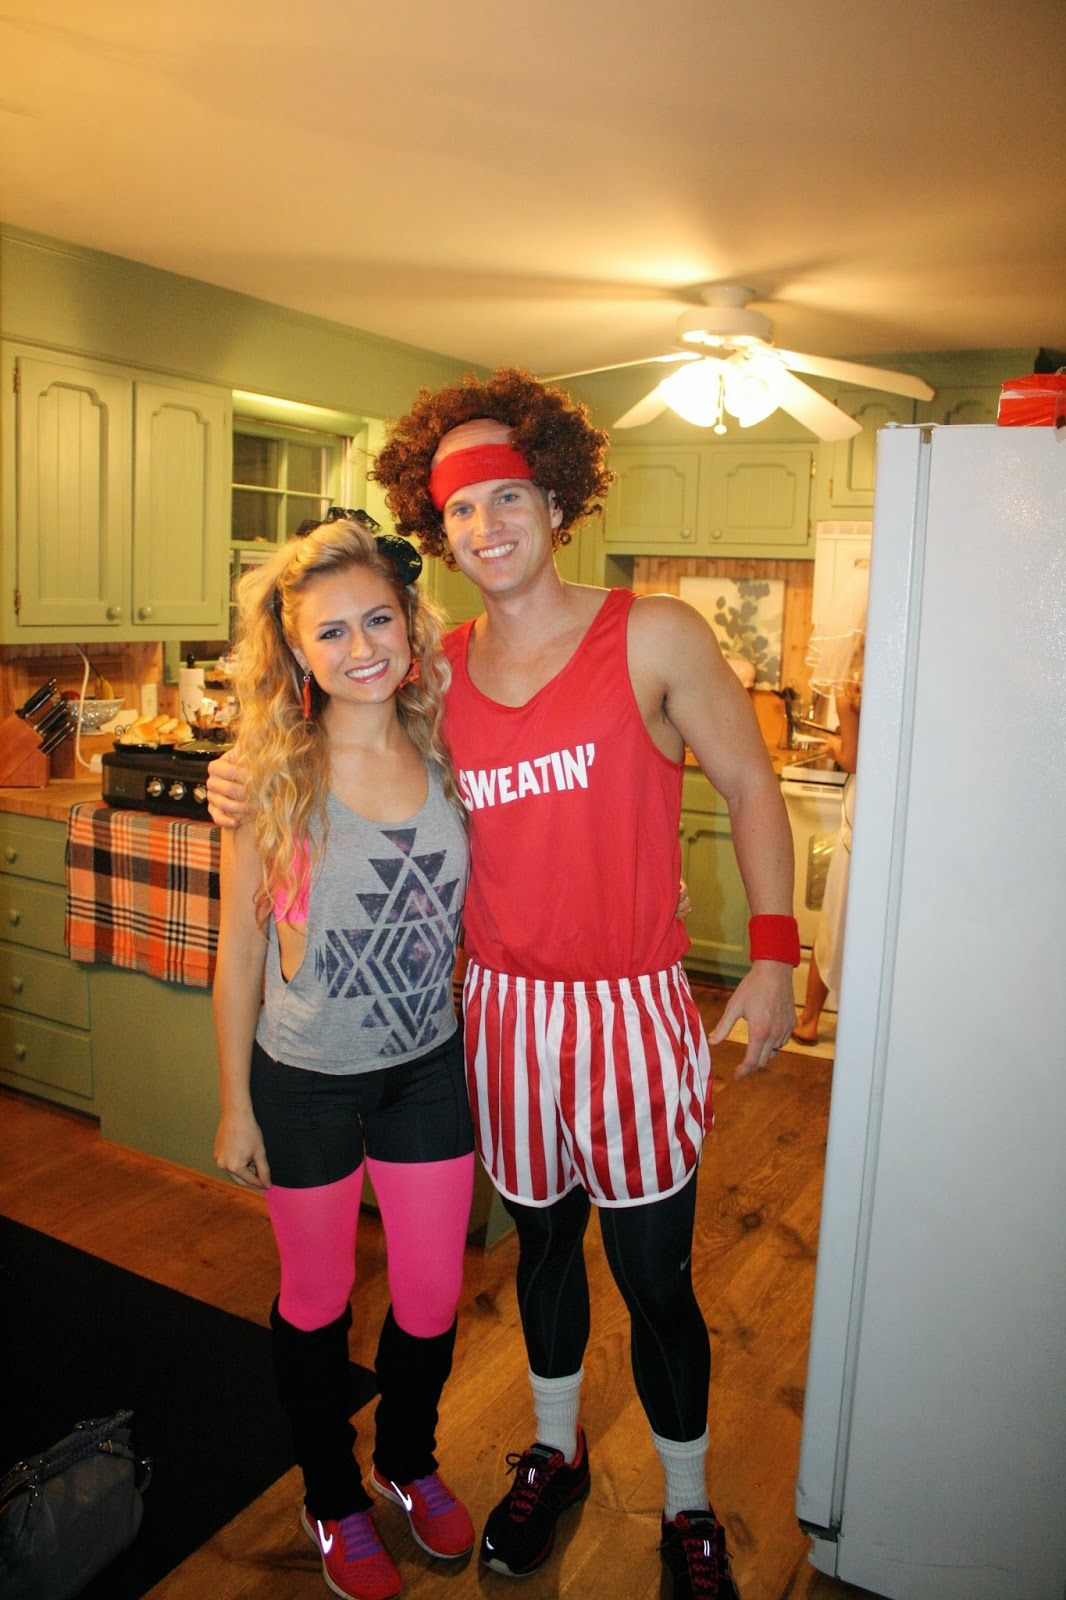 richard simmons costume Richard Simmons Couple Costume